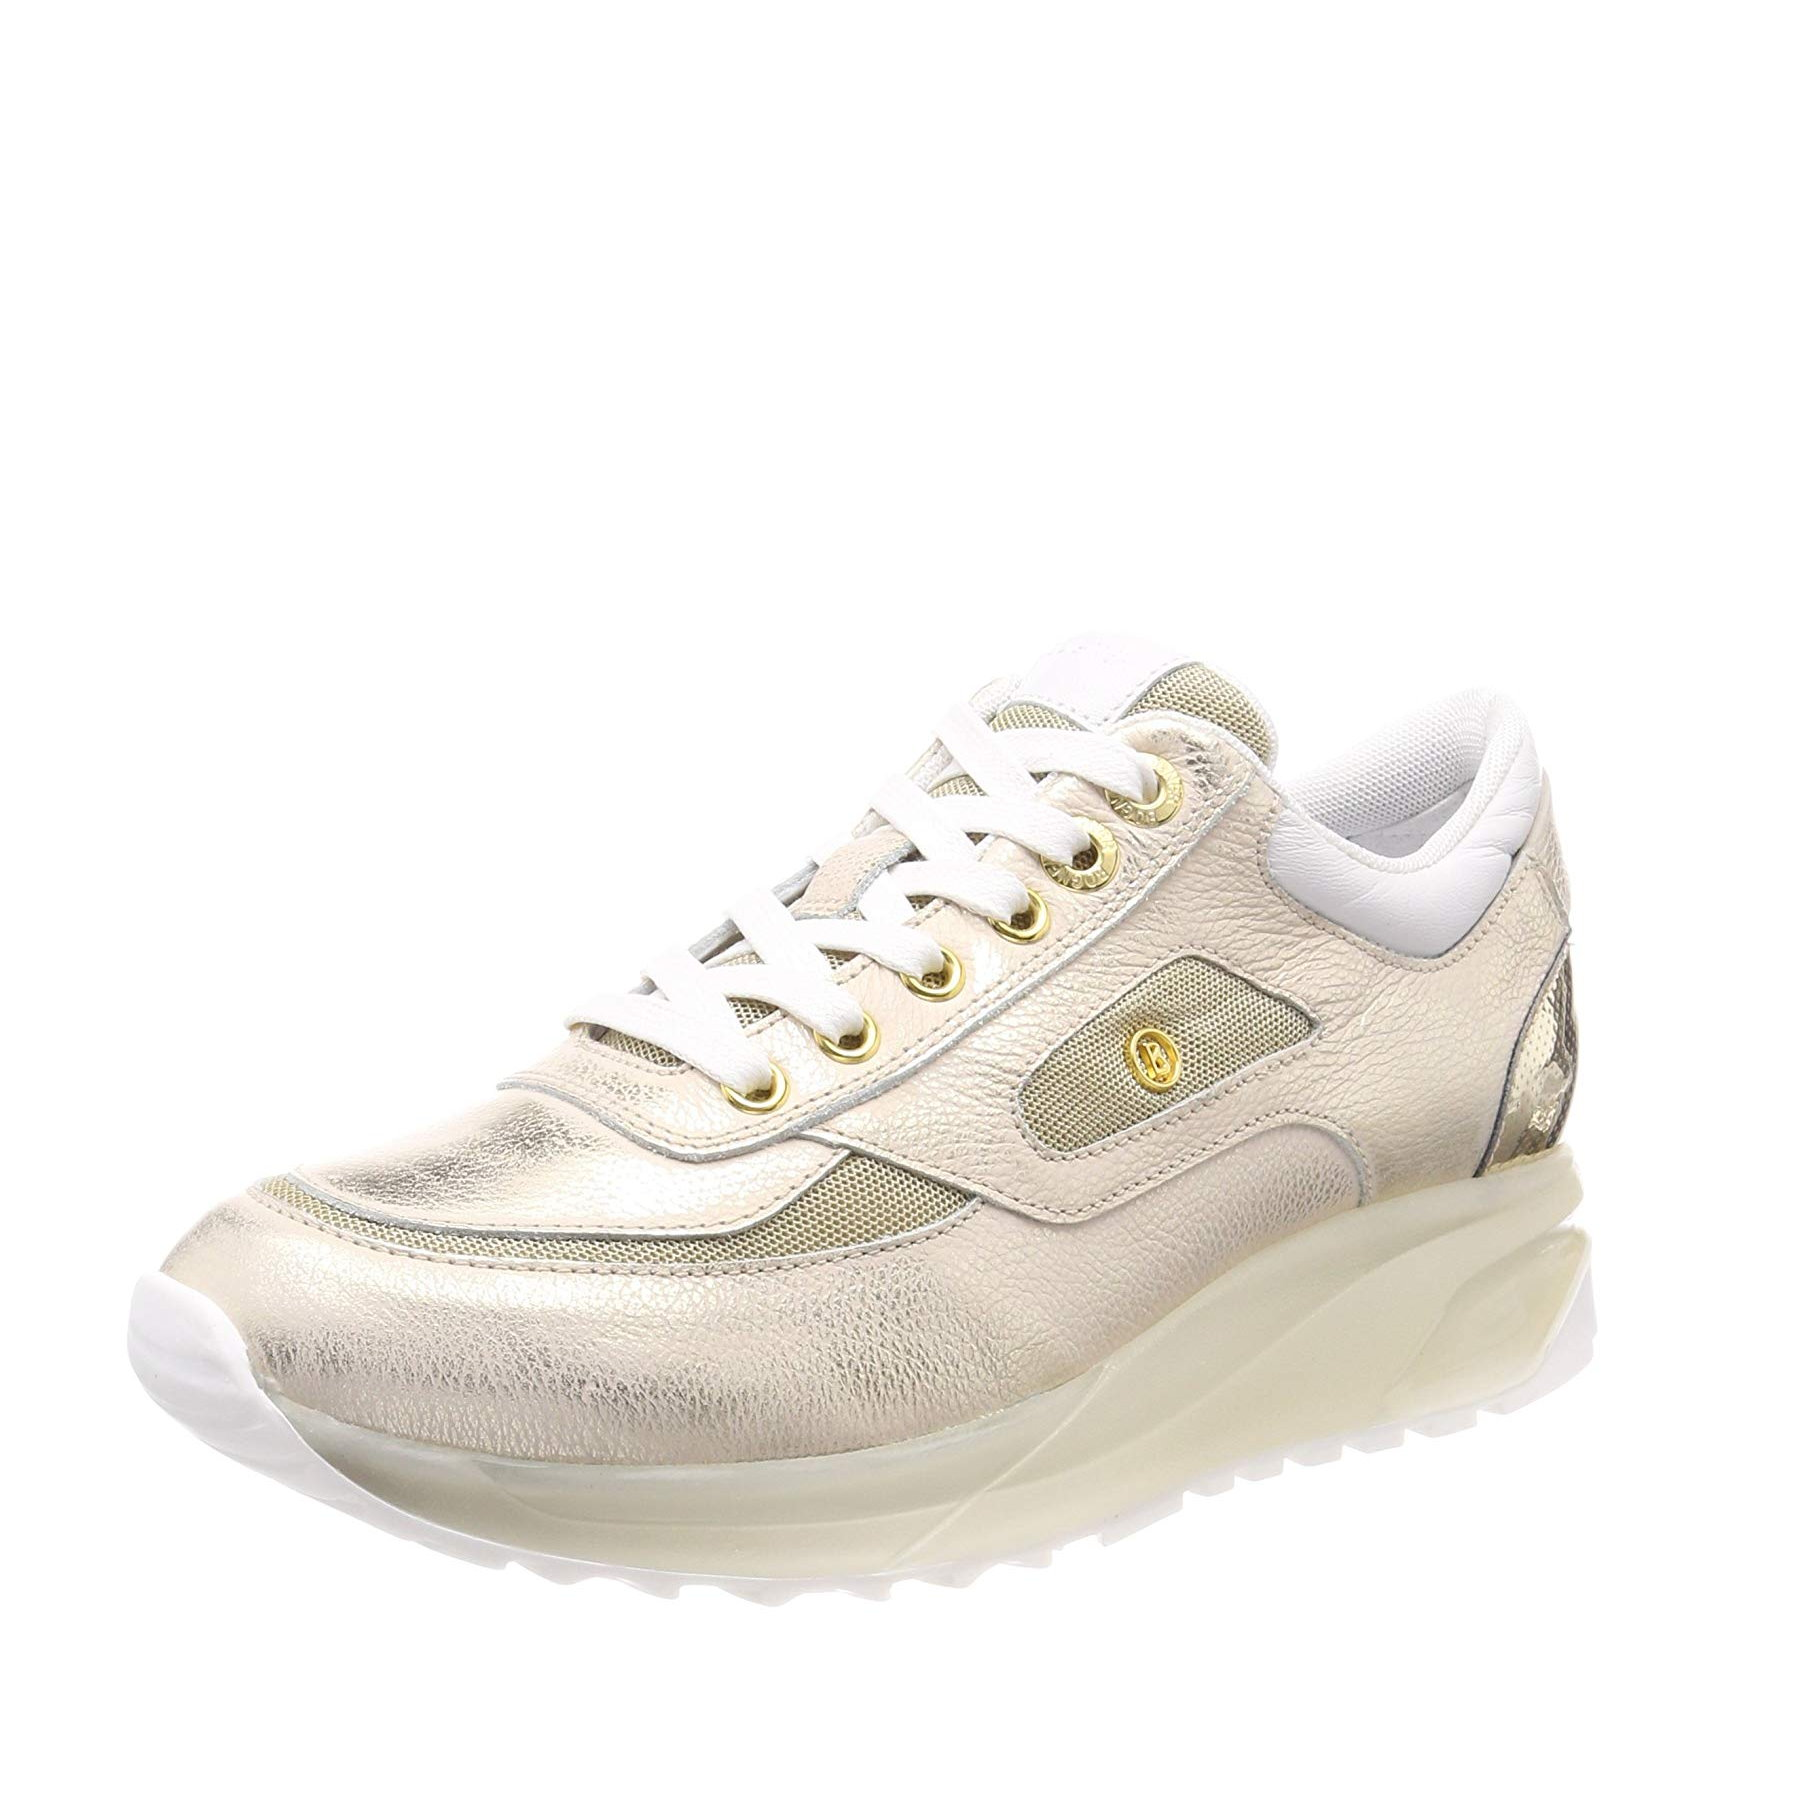 finest selection 44924 4267b BOGNER Damen Sneaker Schuhe New York Lady 10 / Platinum Leder |  Fashion-House